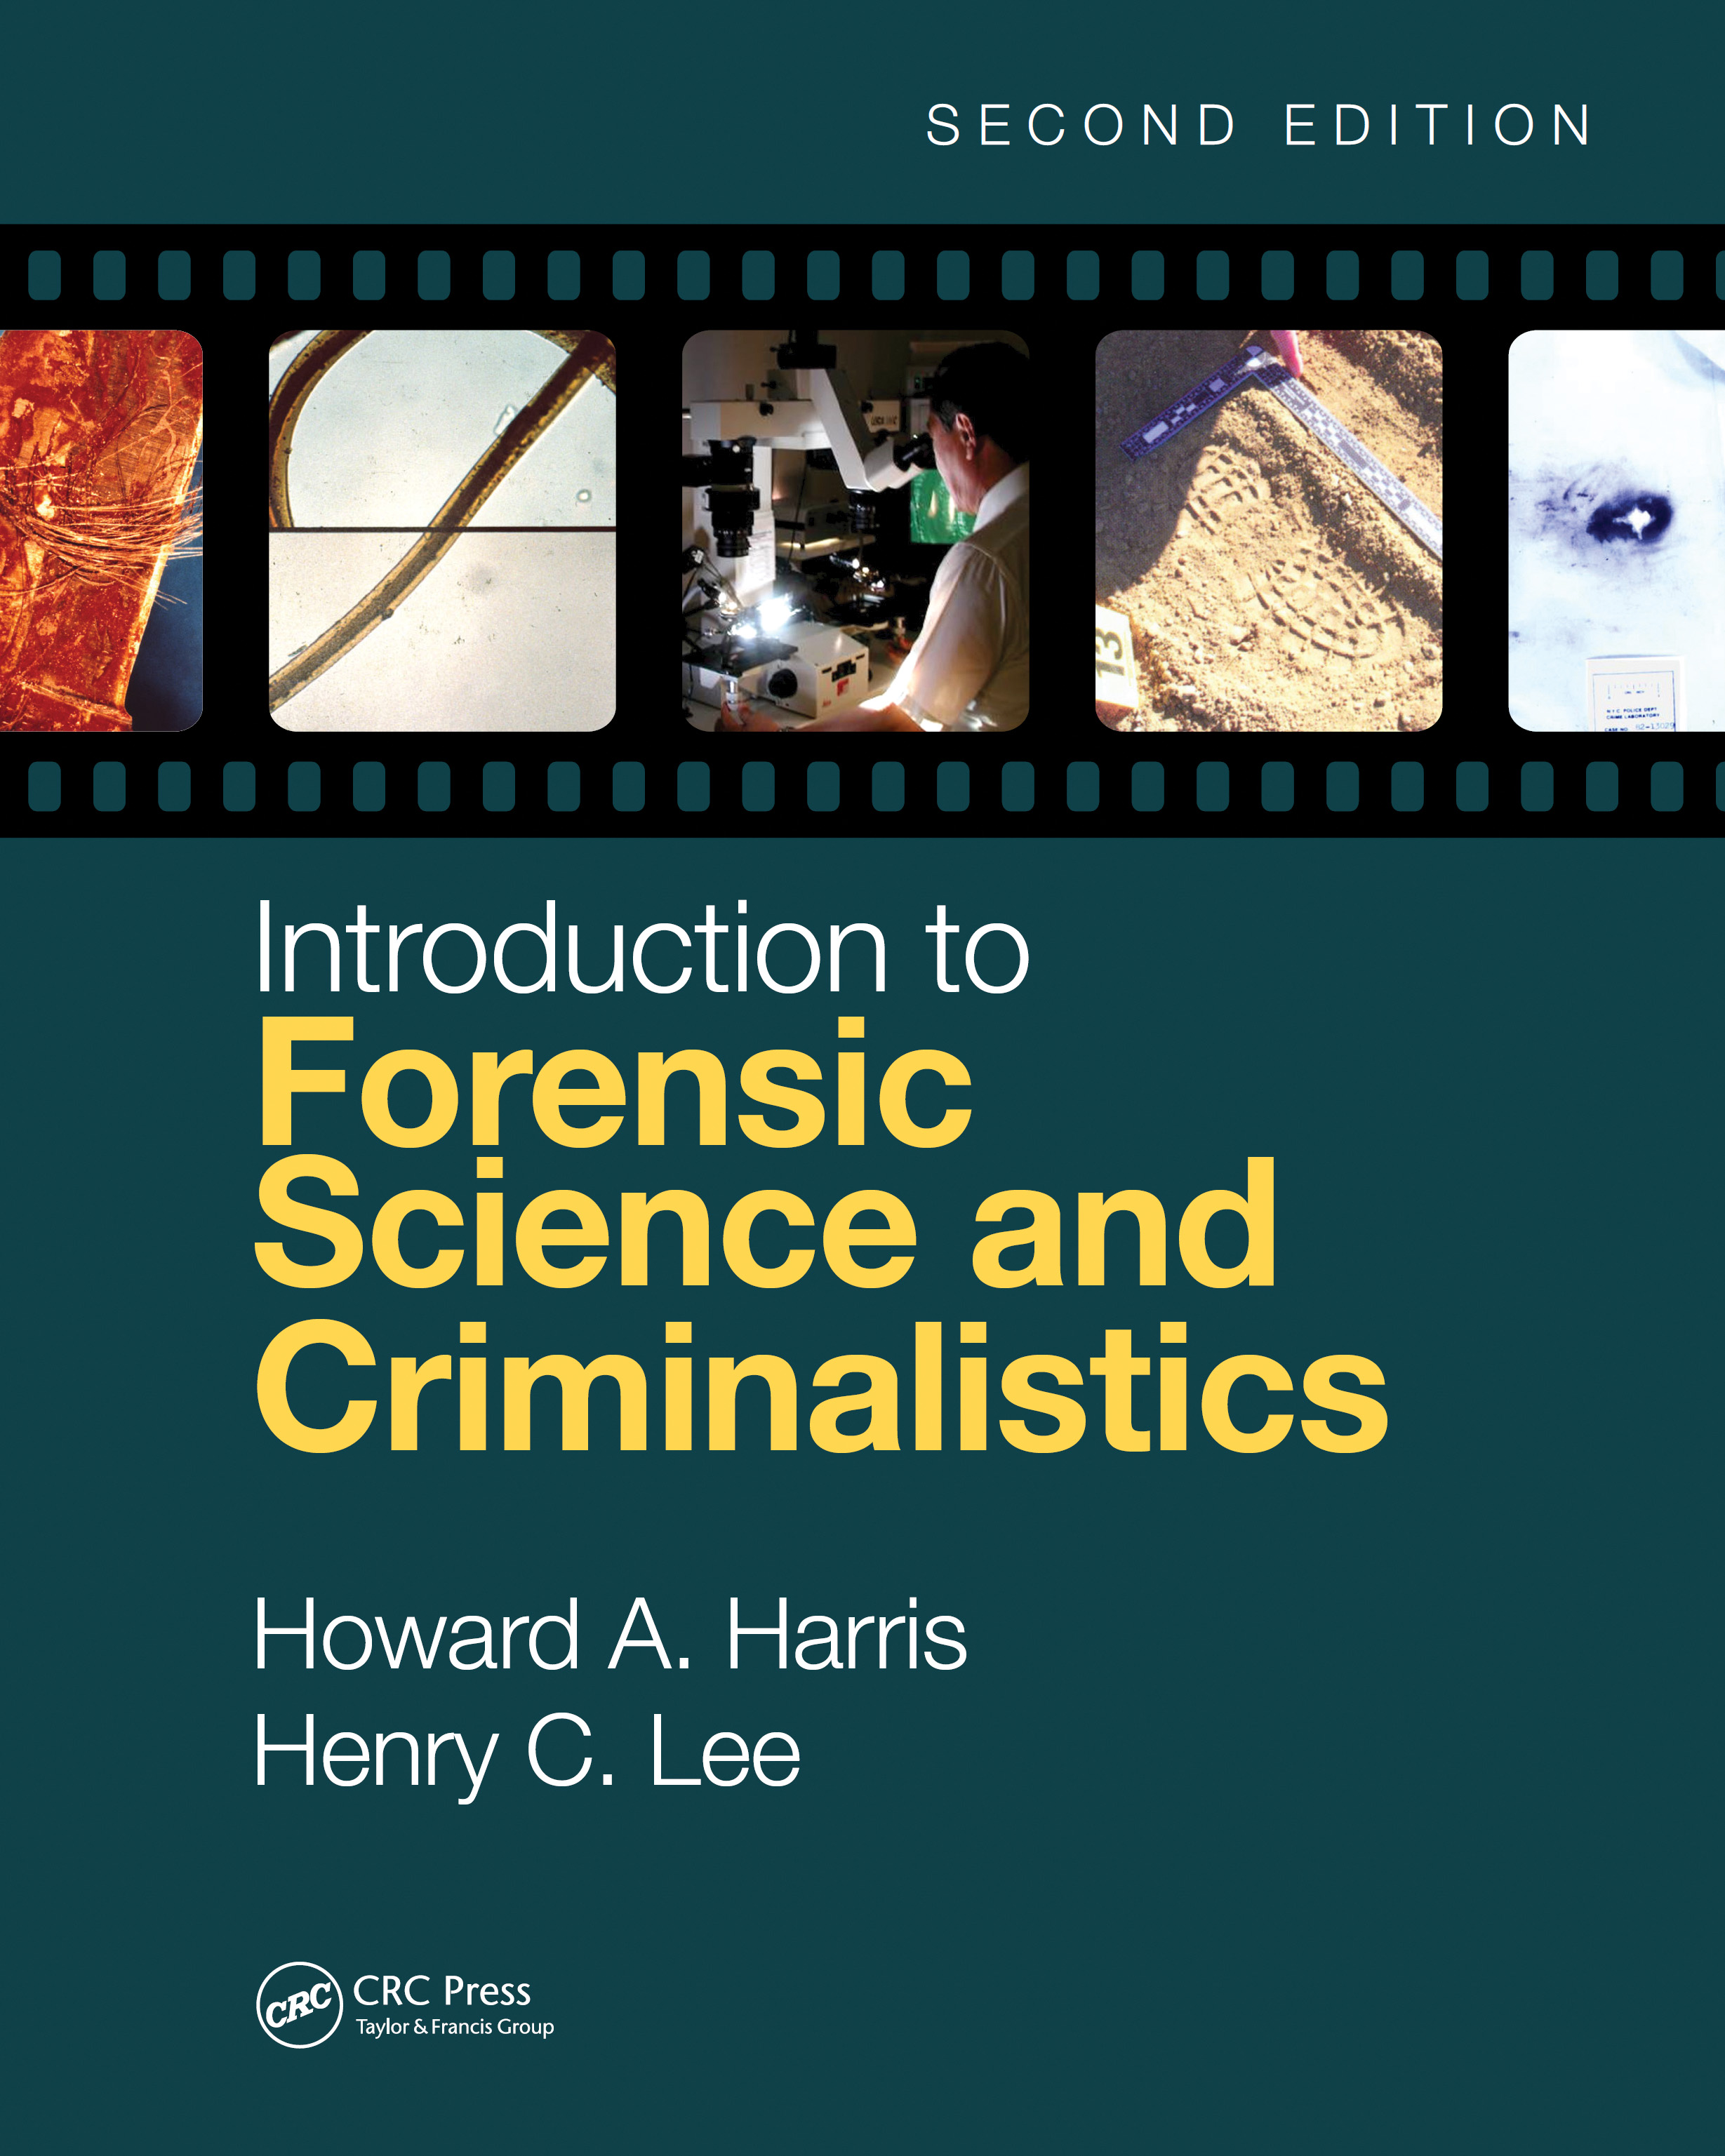 Introduction to Forensic Science and Criminalistics, Second Edition book cover